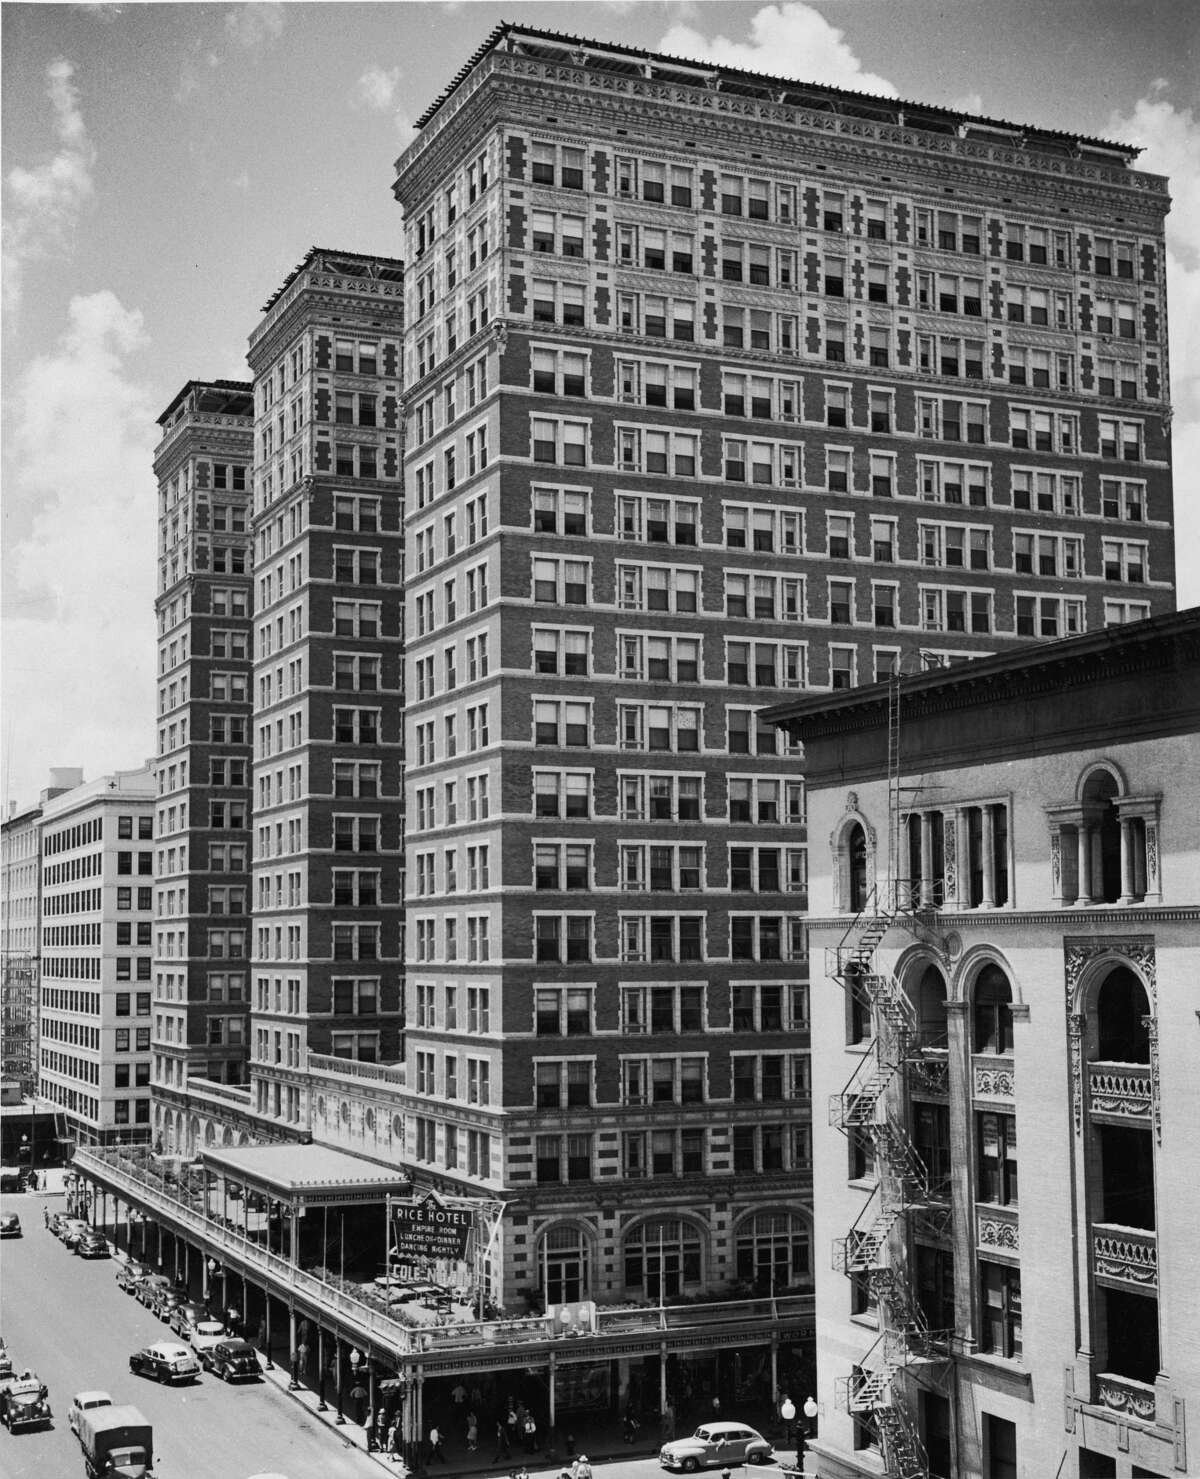 When the 17-story Rice Hotel opened in 1913, it was the tallest building in Houston. This photo, taken decades later, shows the third tower (background) added in 1926.